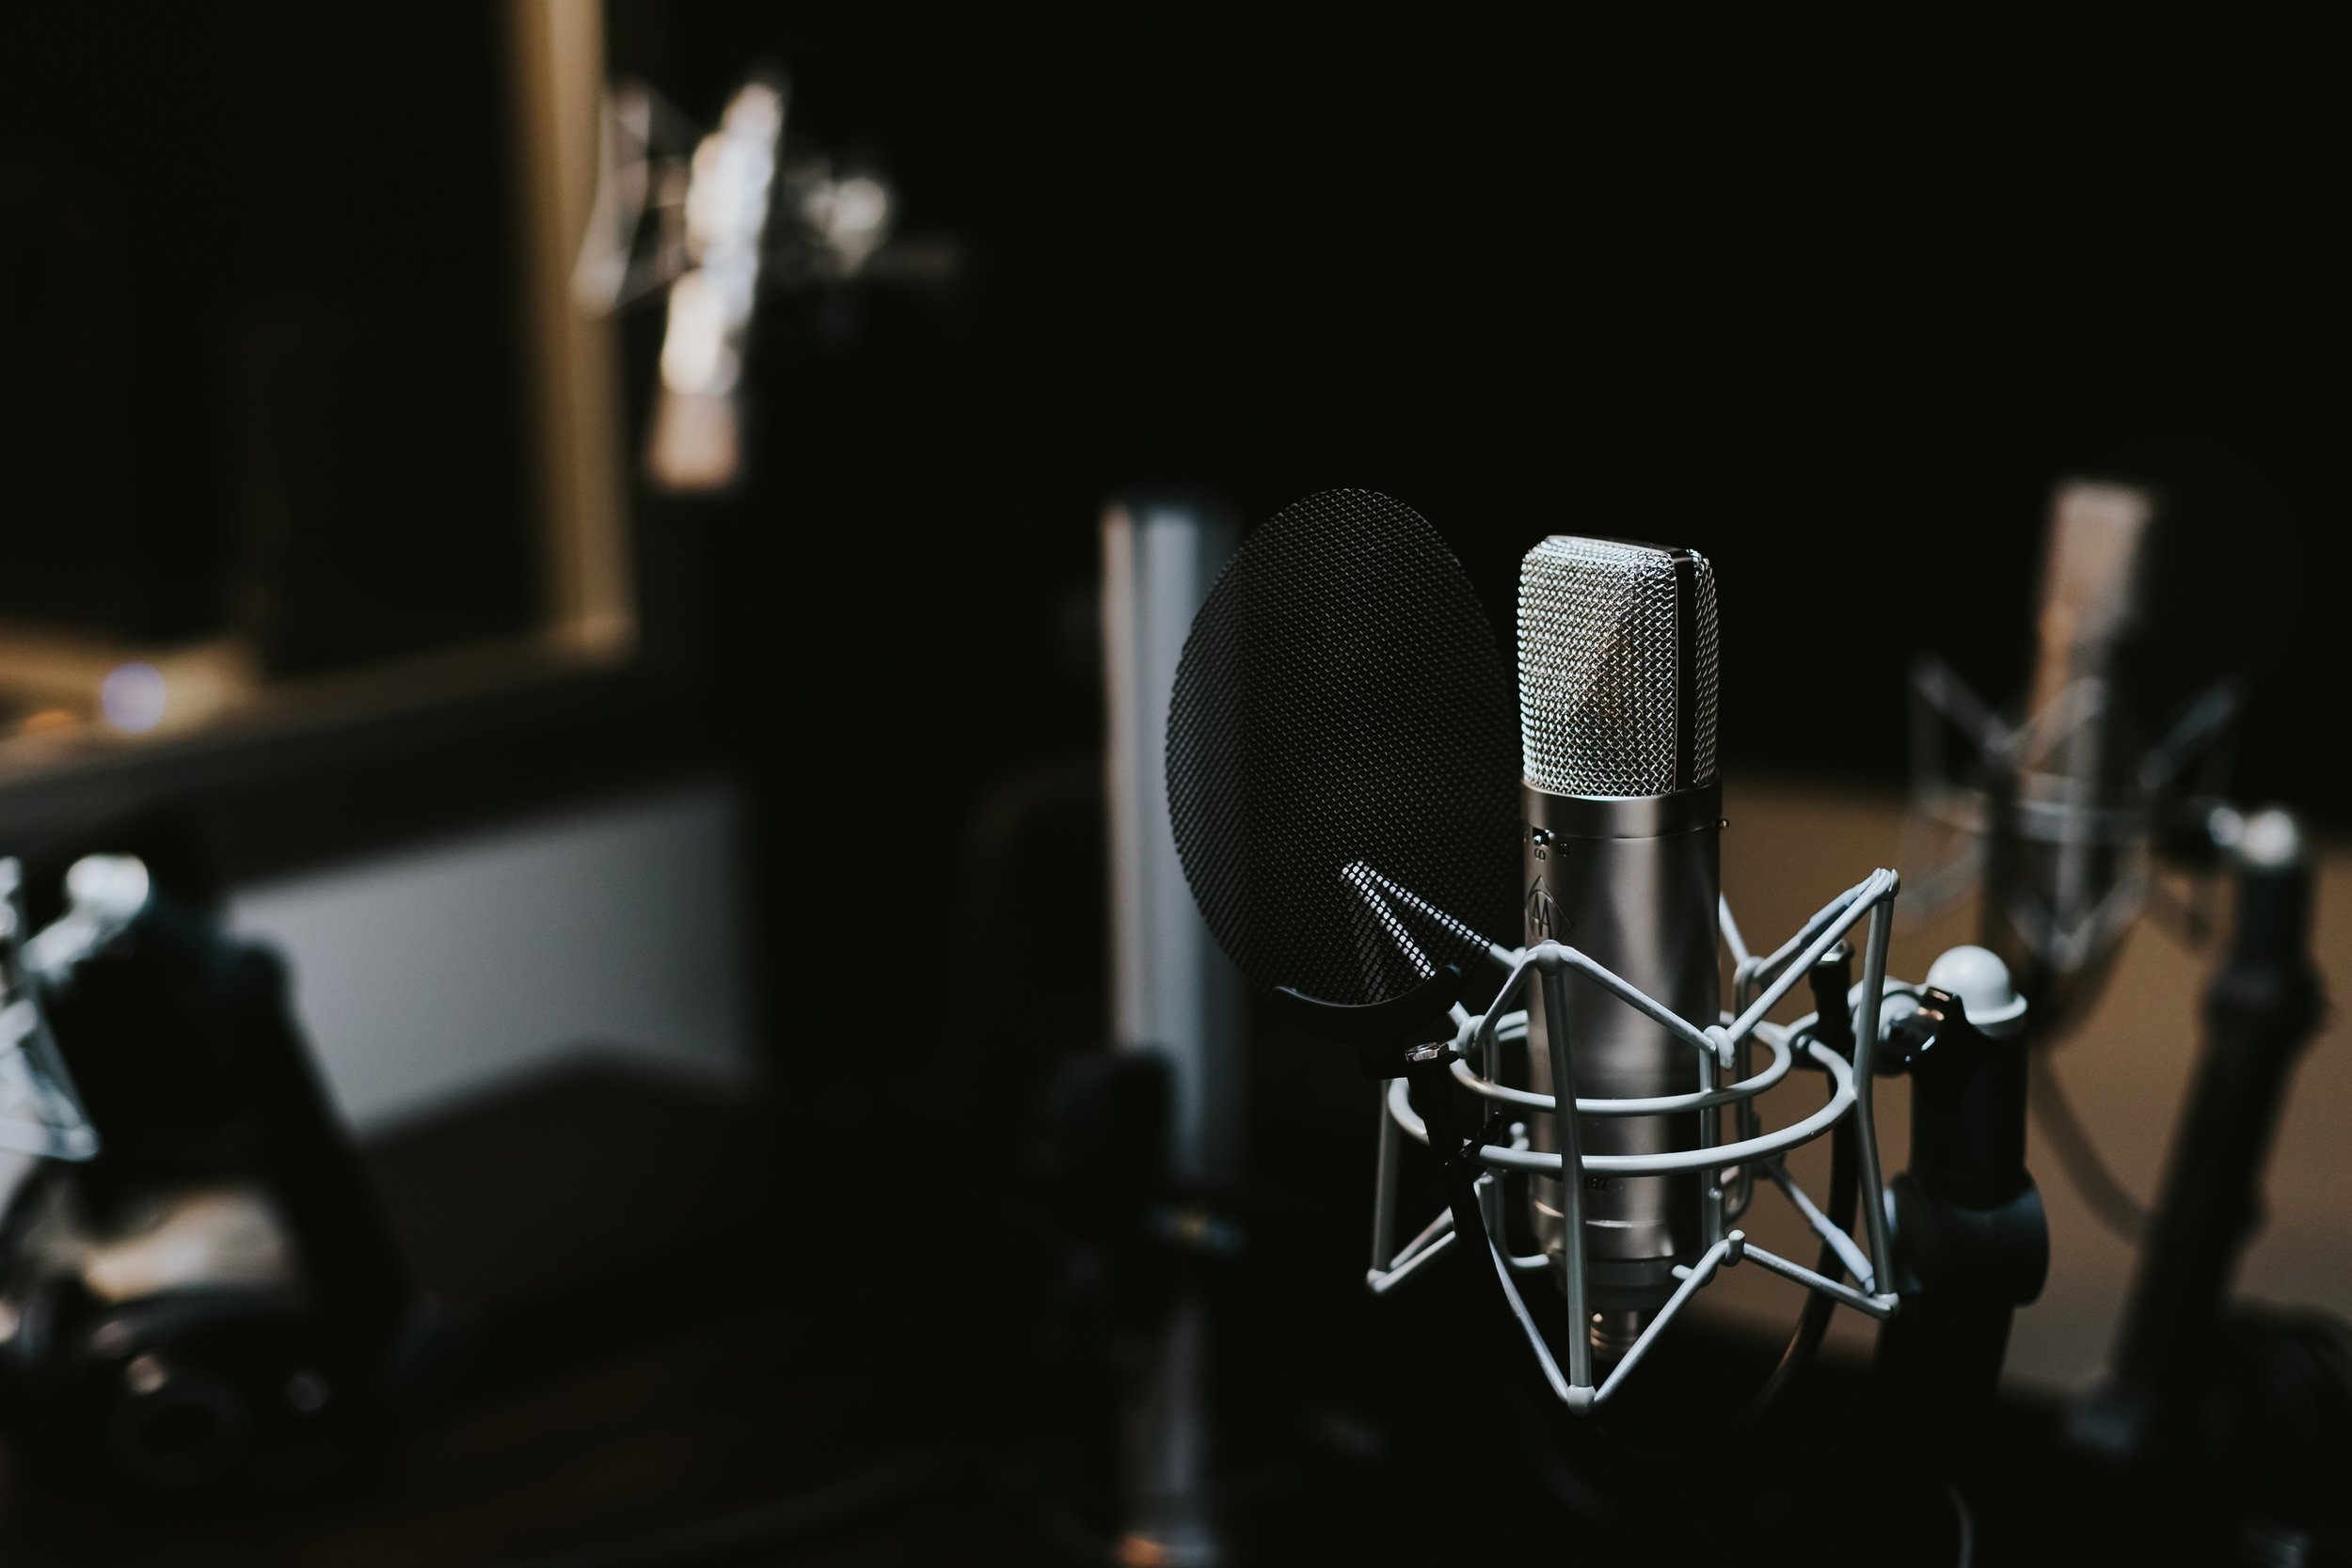 Podcasting - Your customers are listening. Podcasts are one of the fastest growing, highest return, lowest dollar marketing investments for companies of all sizes. Connect today with a young, mobile audience hungry for your content.